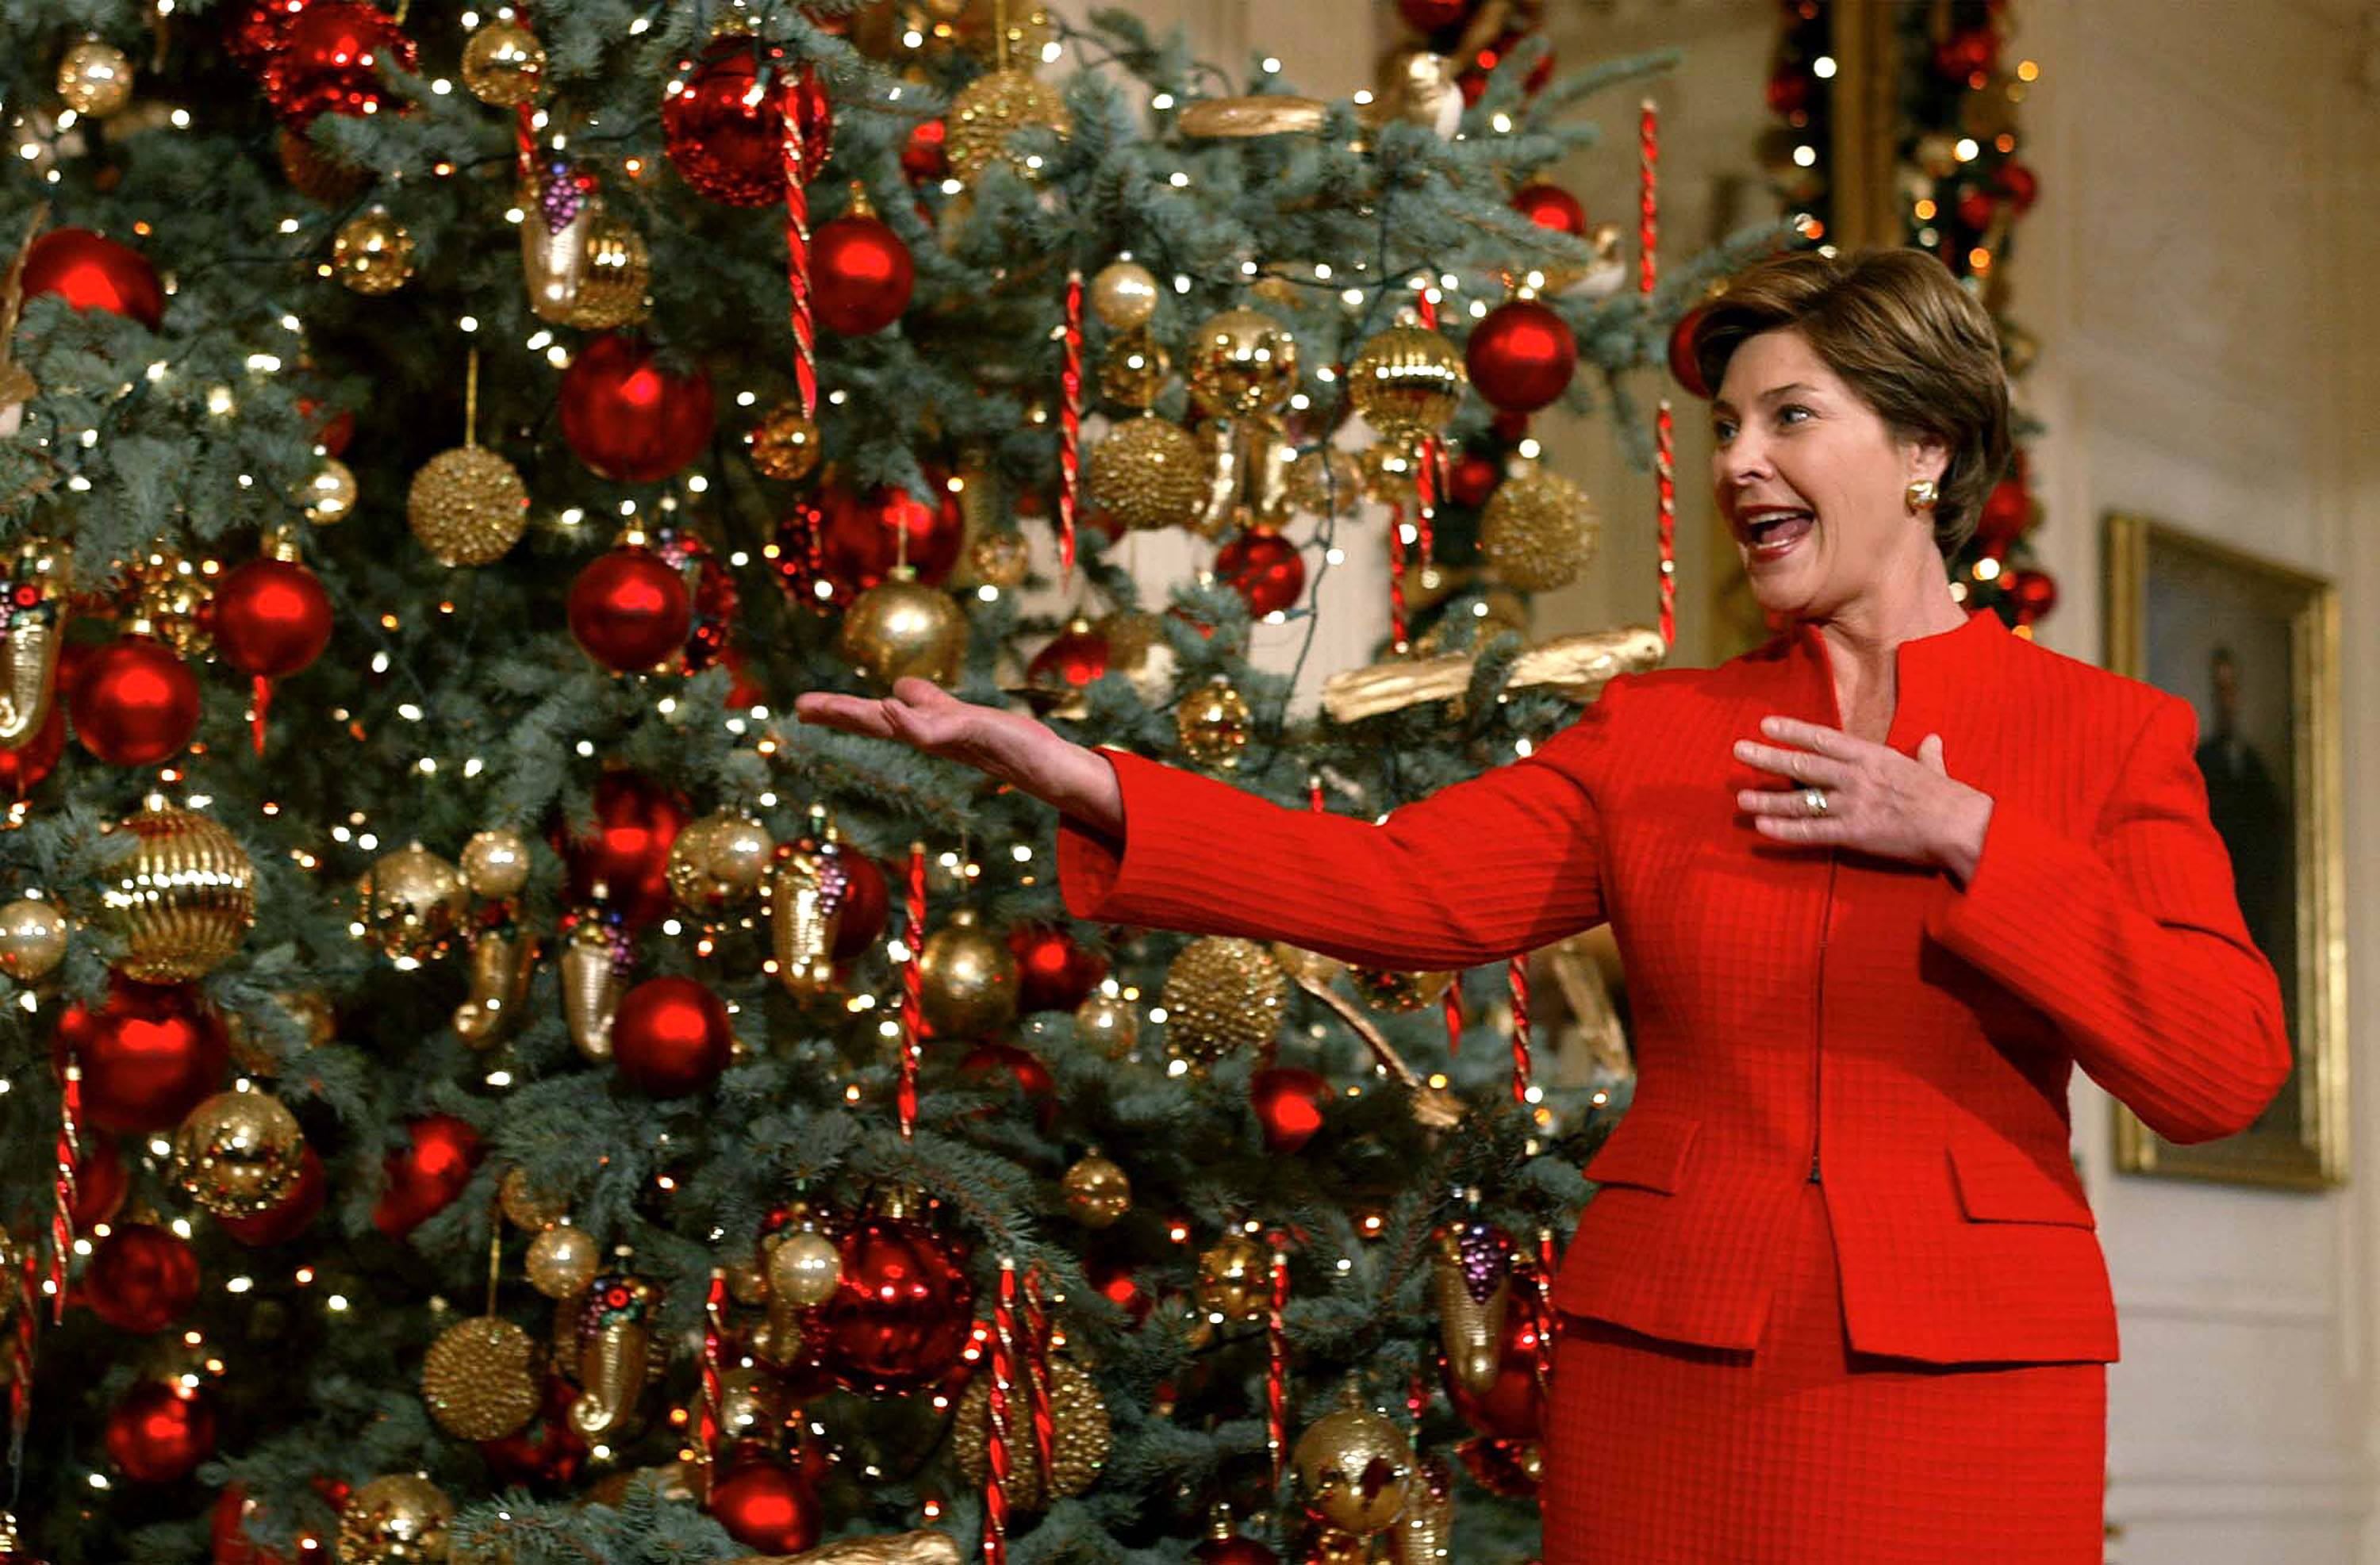 Laura Bush with a Christmas tree